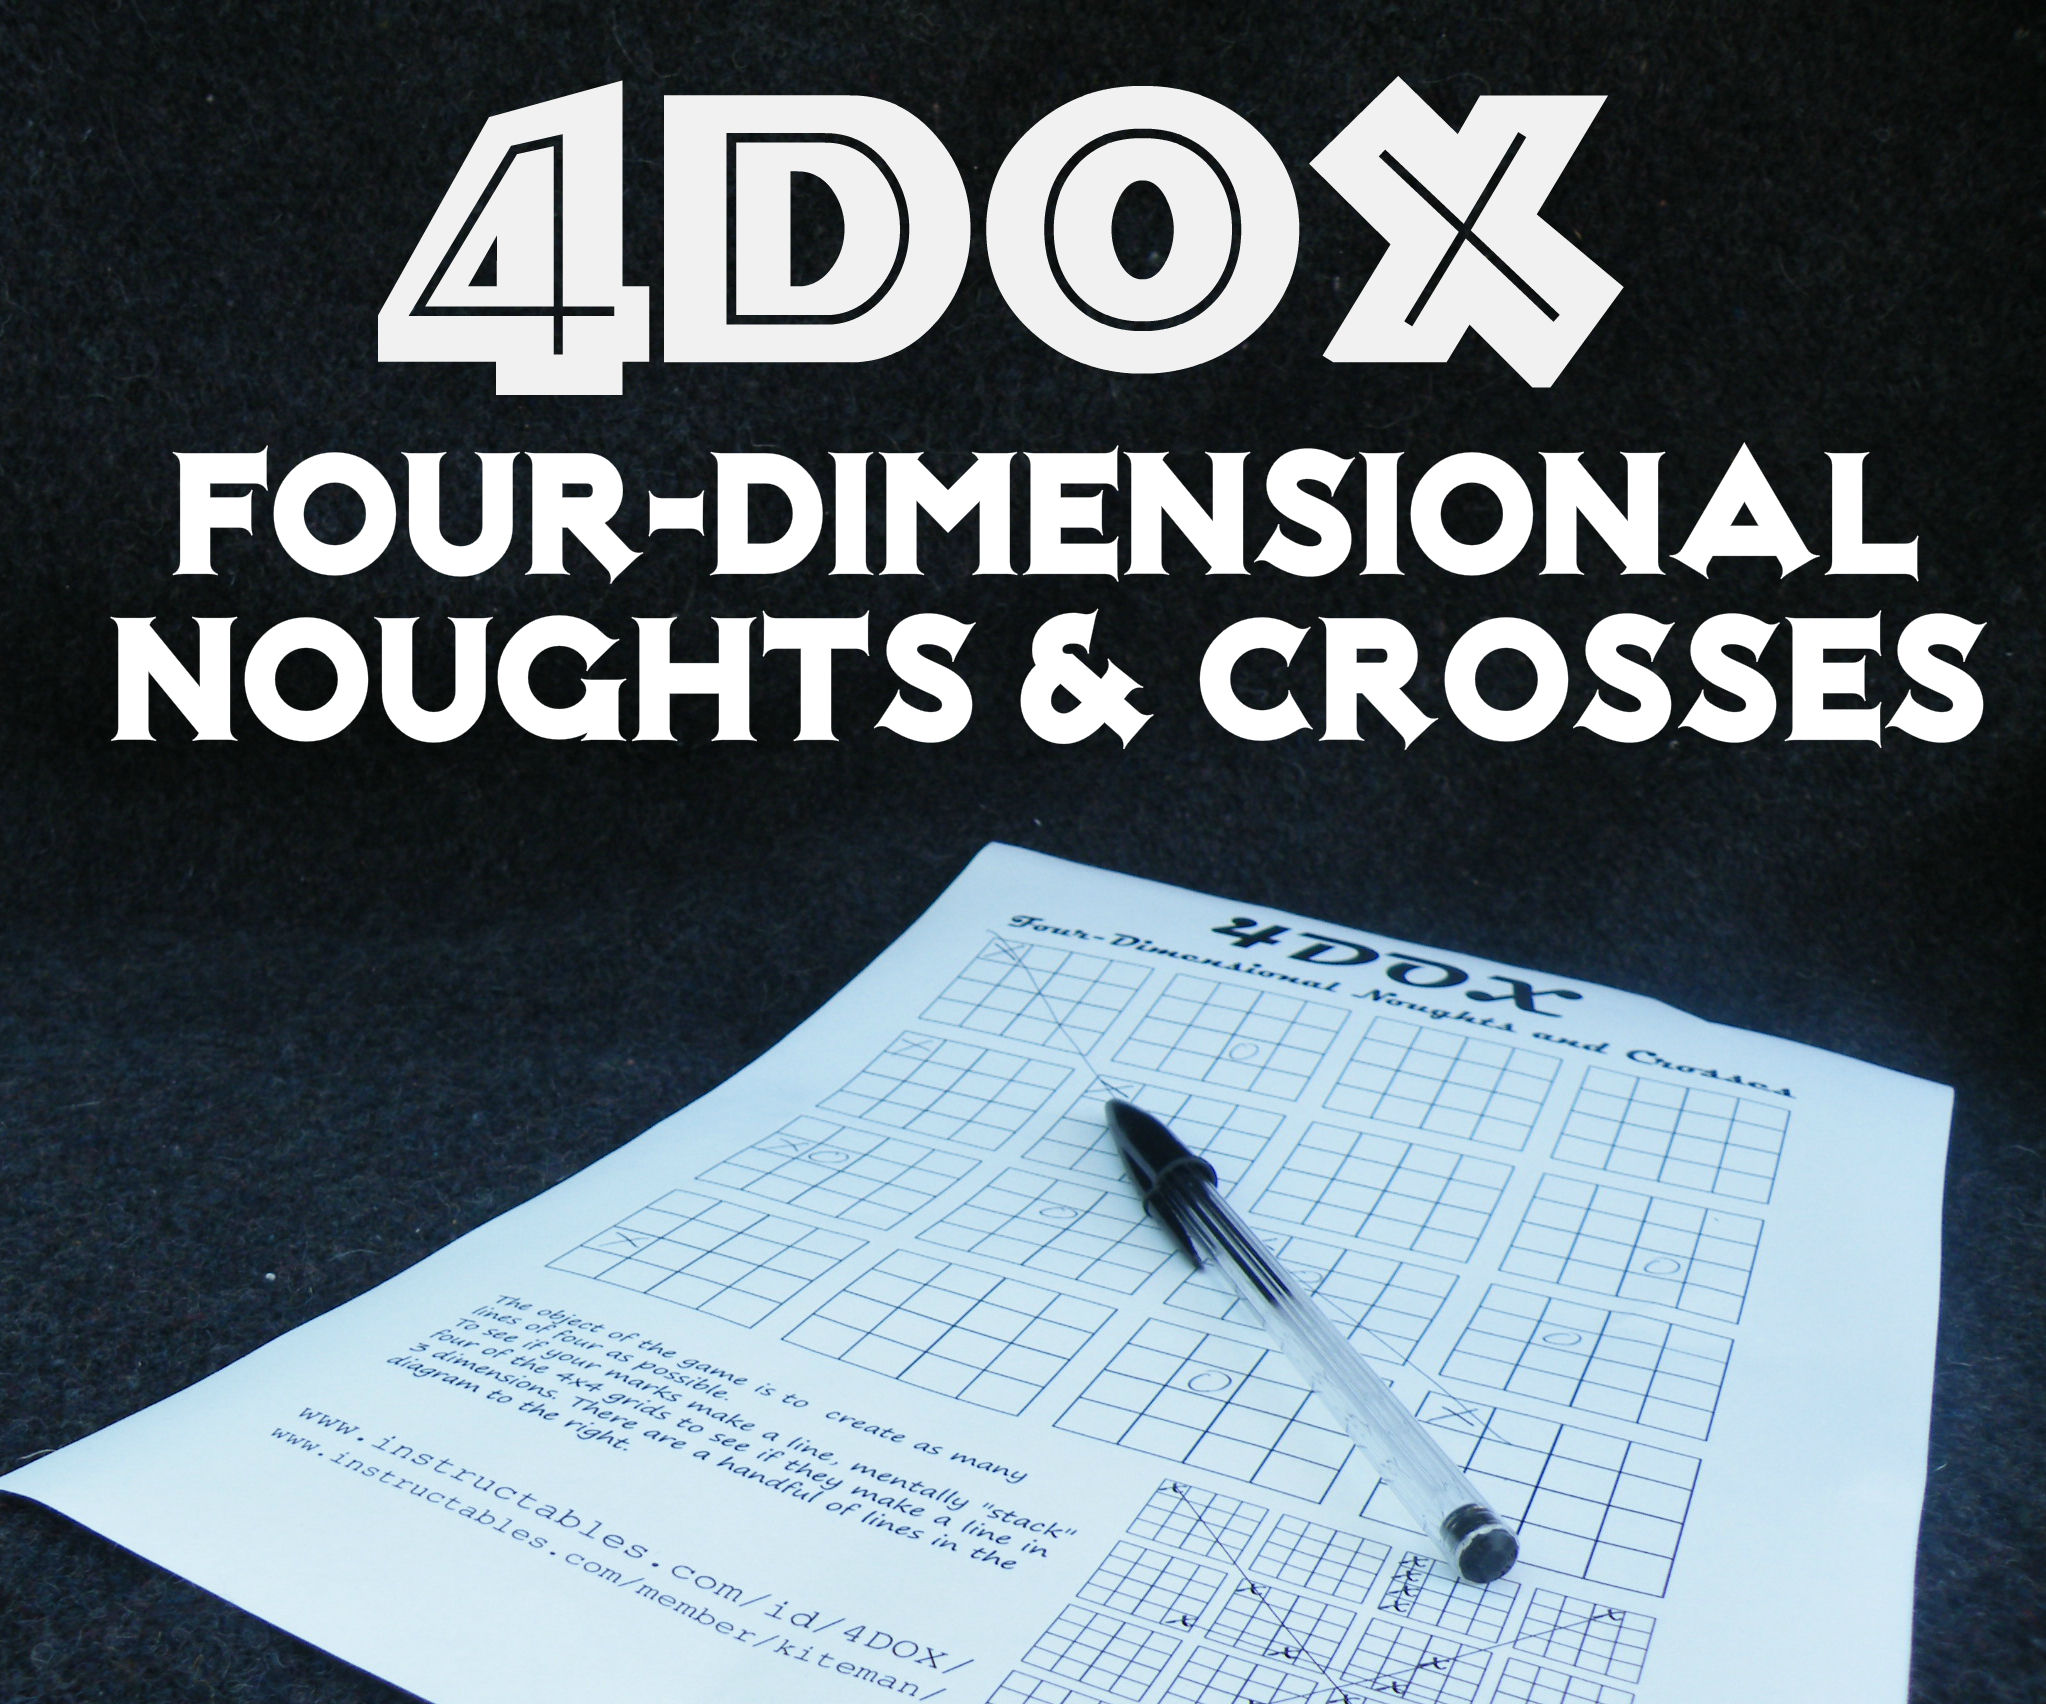 4DOX (Four-dimensional Noughts & Crosses)